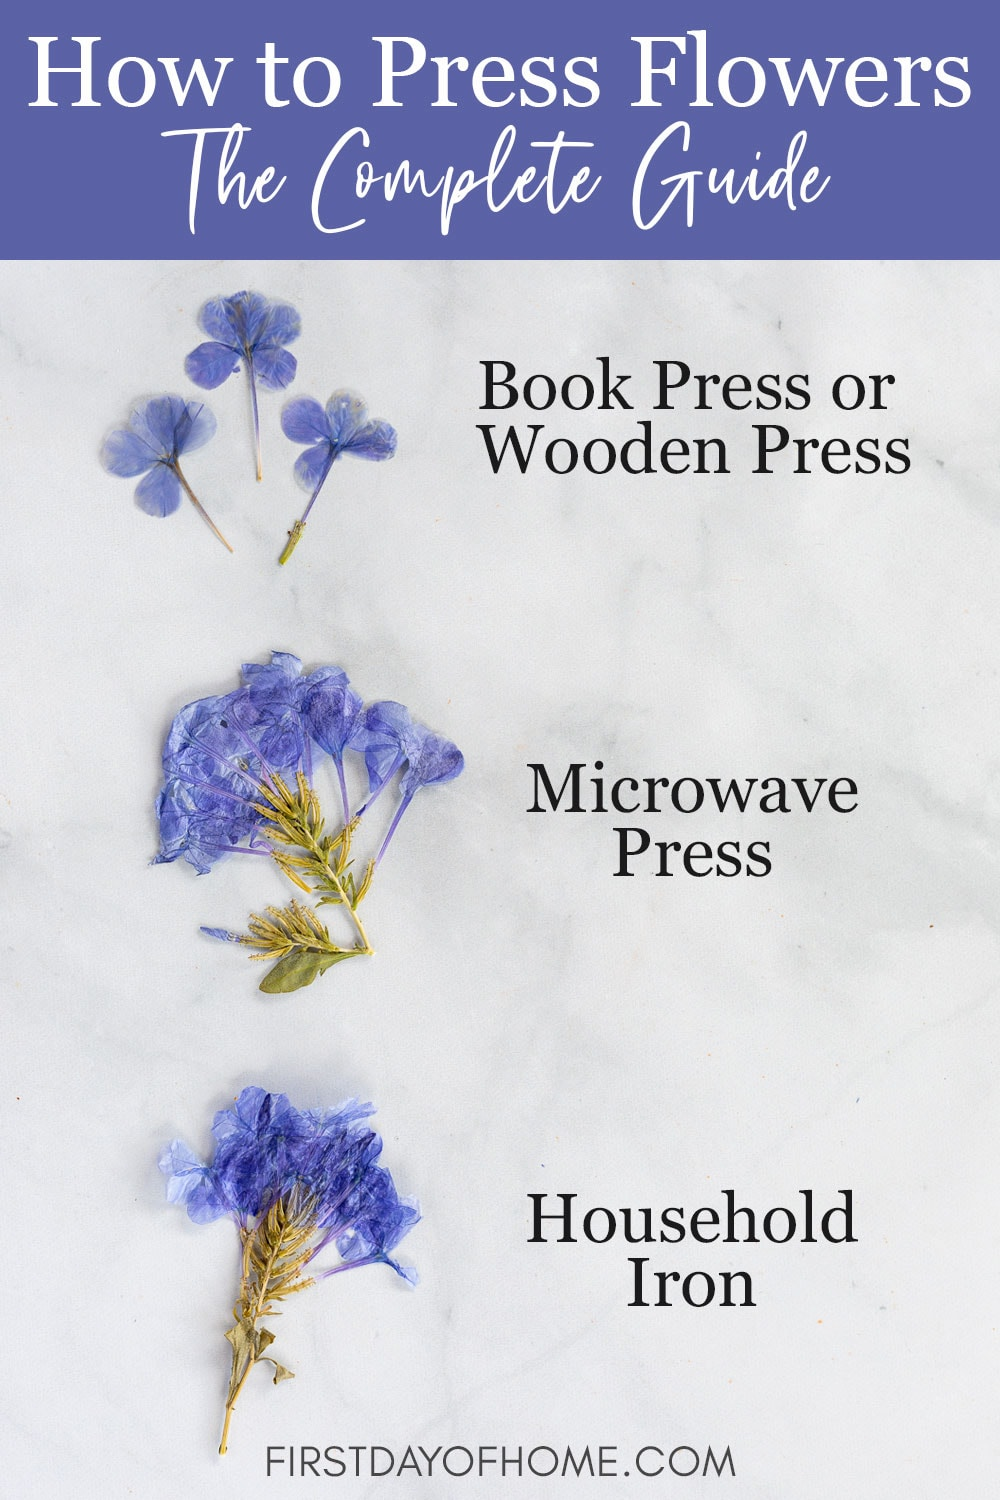 Comparison of four methods of pressing flowers